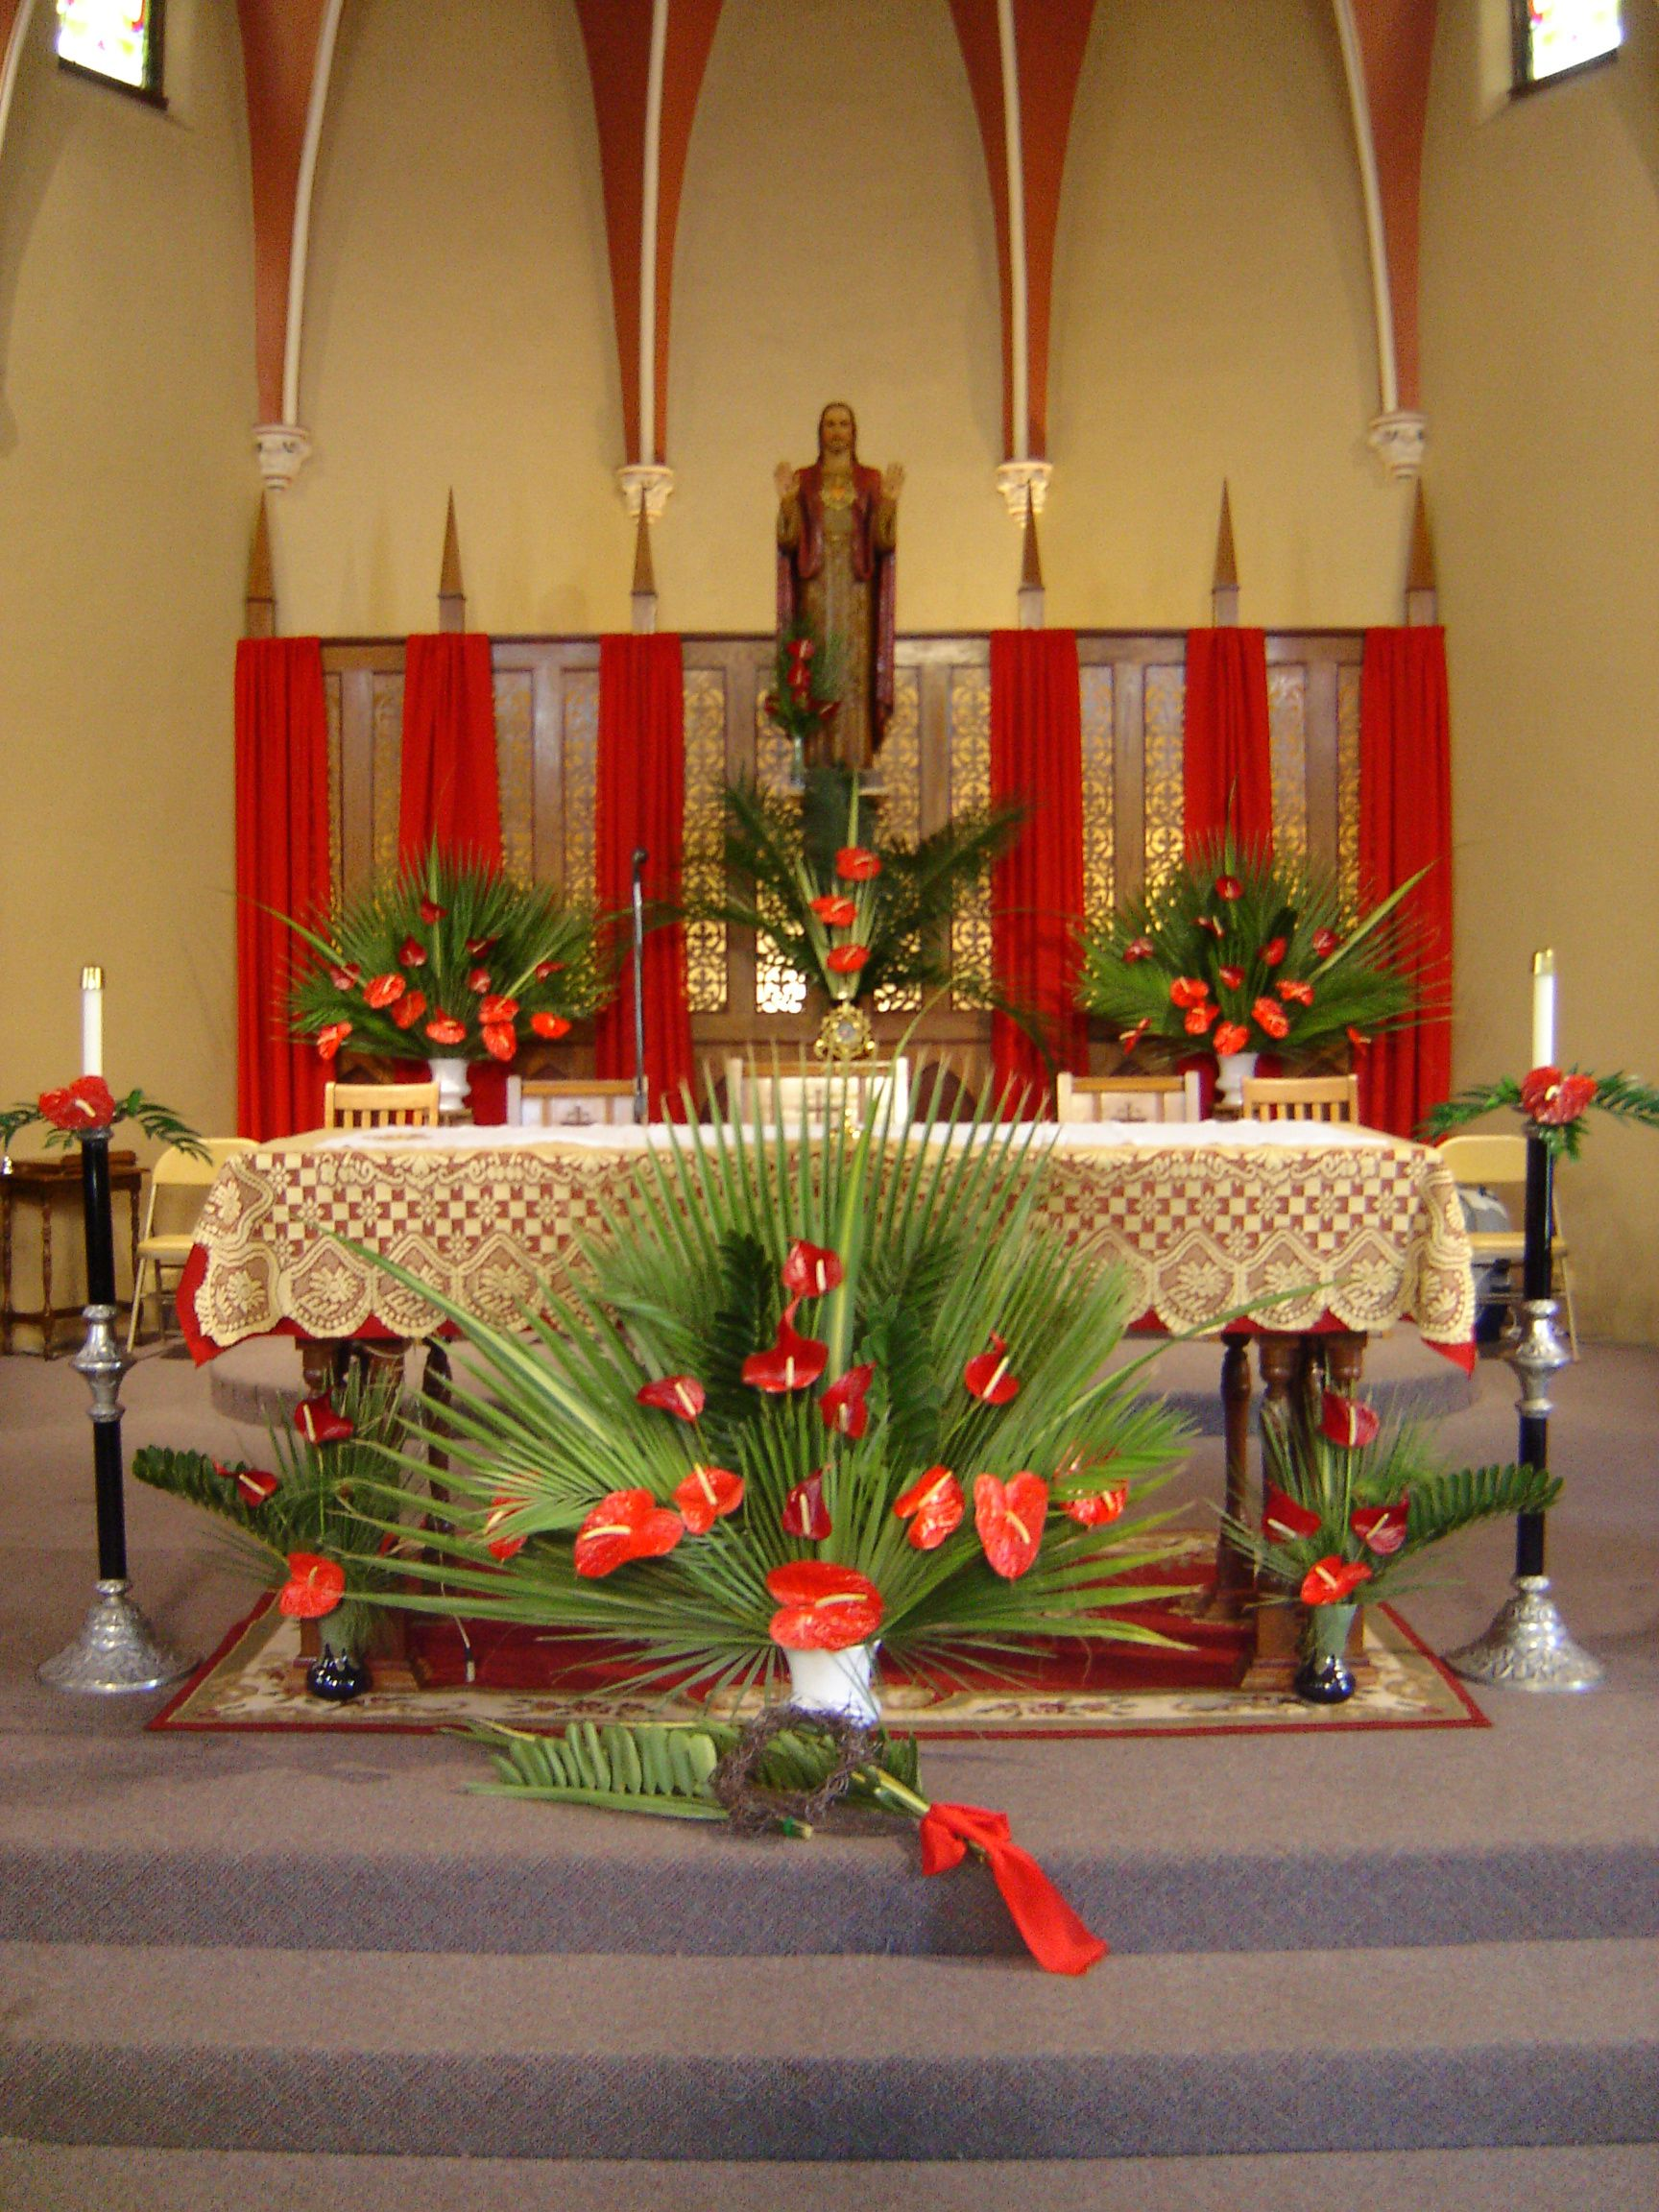 40 inspirational church christmas decorations ideas palm for Church mural ideas